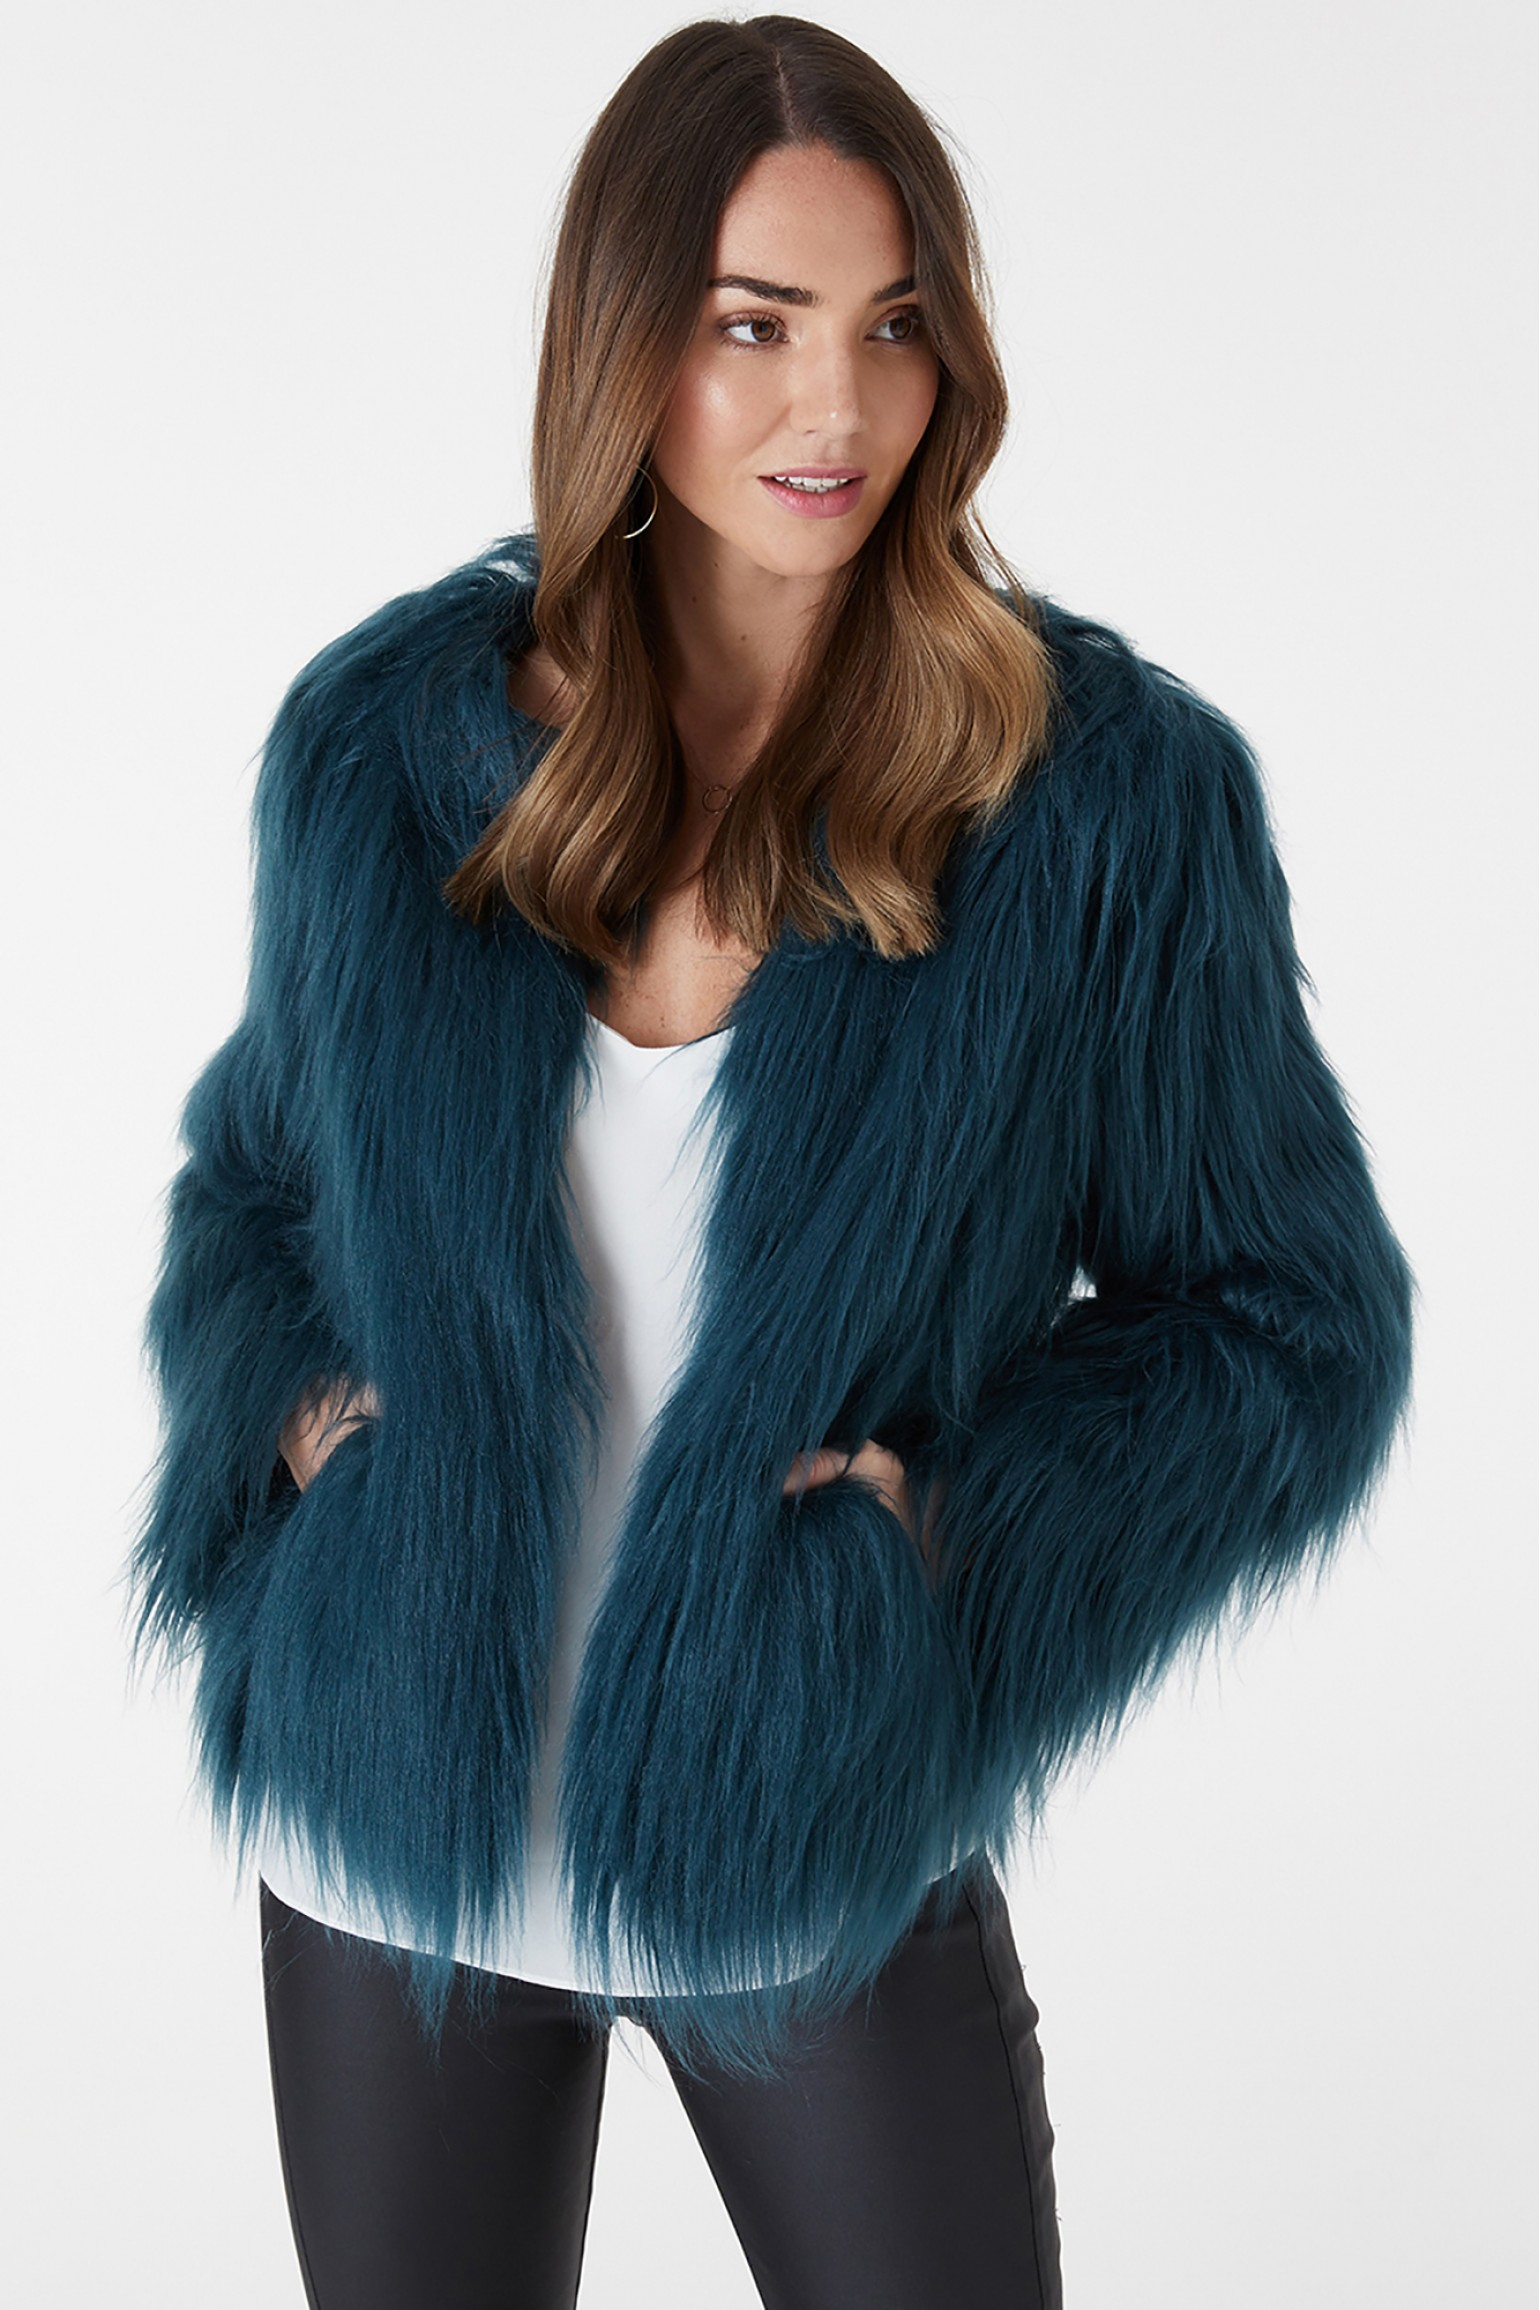 Everly Collective Marmont Faux Fur Jacket